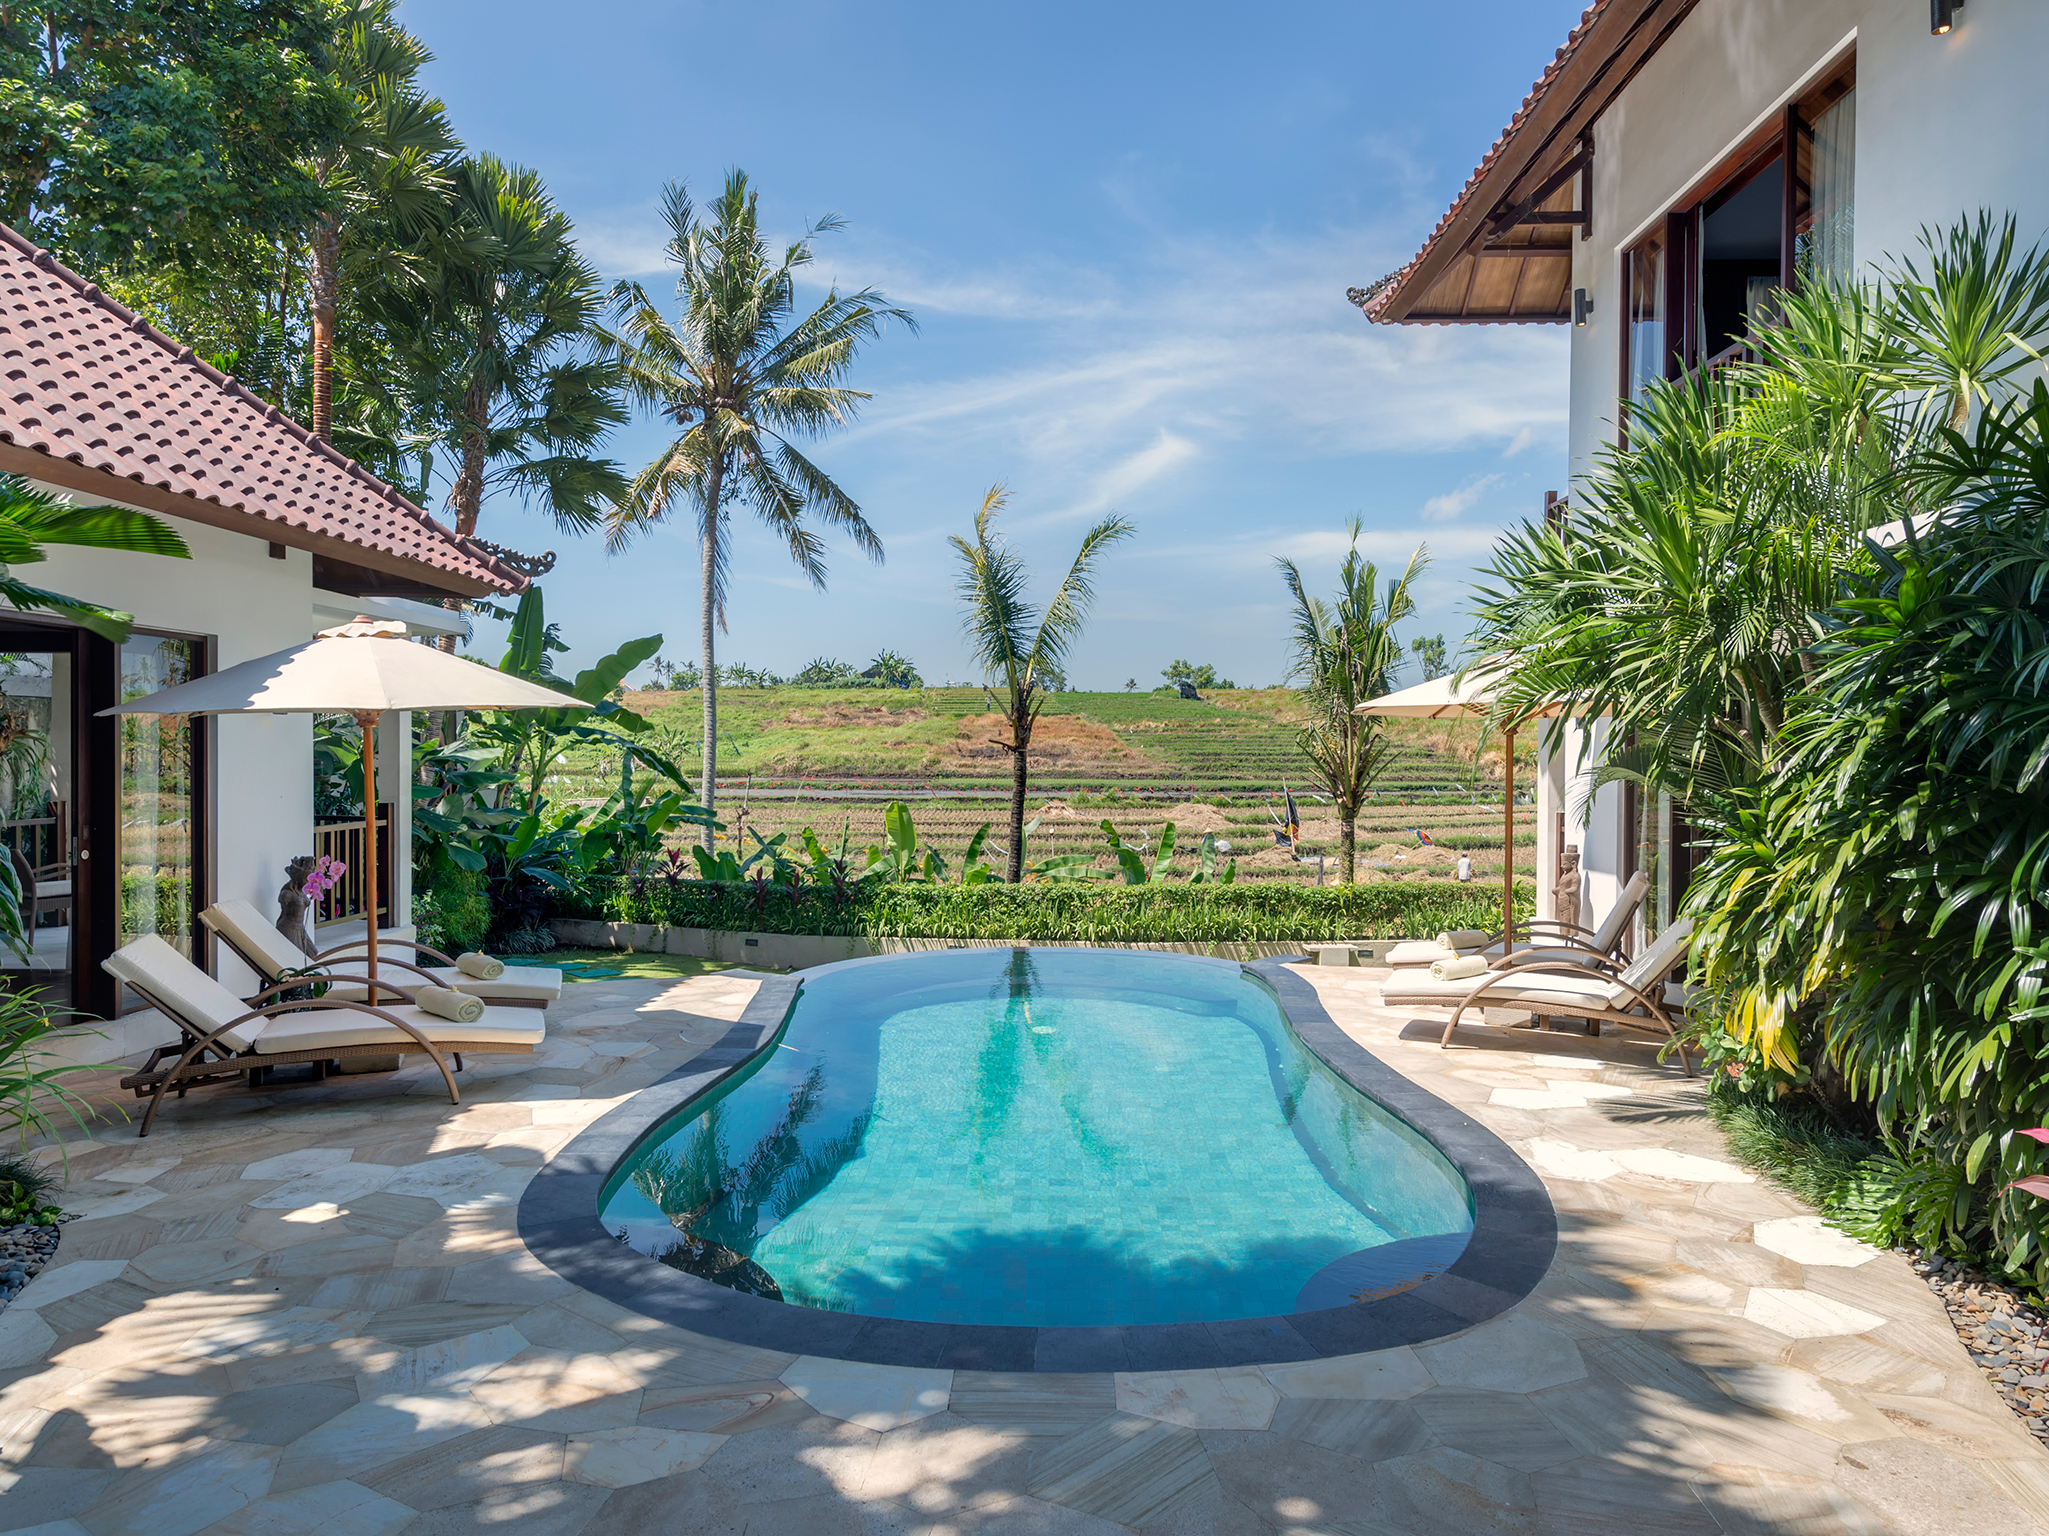 1. Villa Damai - Pool view - Canggu Terrace - Villa Damai, Canggu, Bali